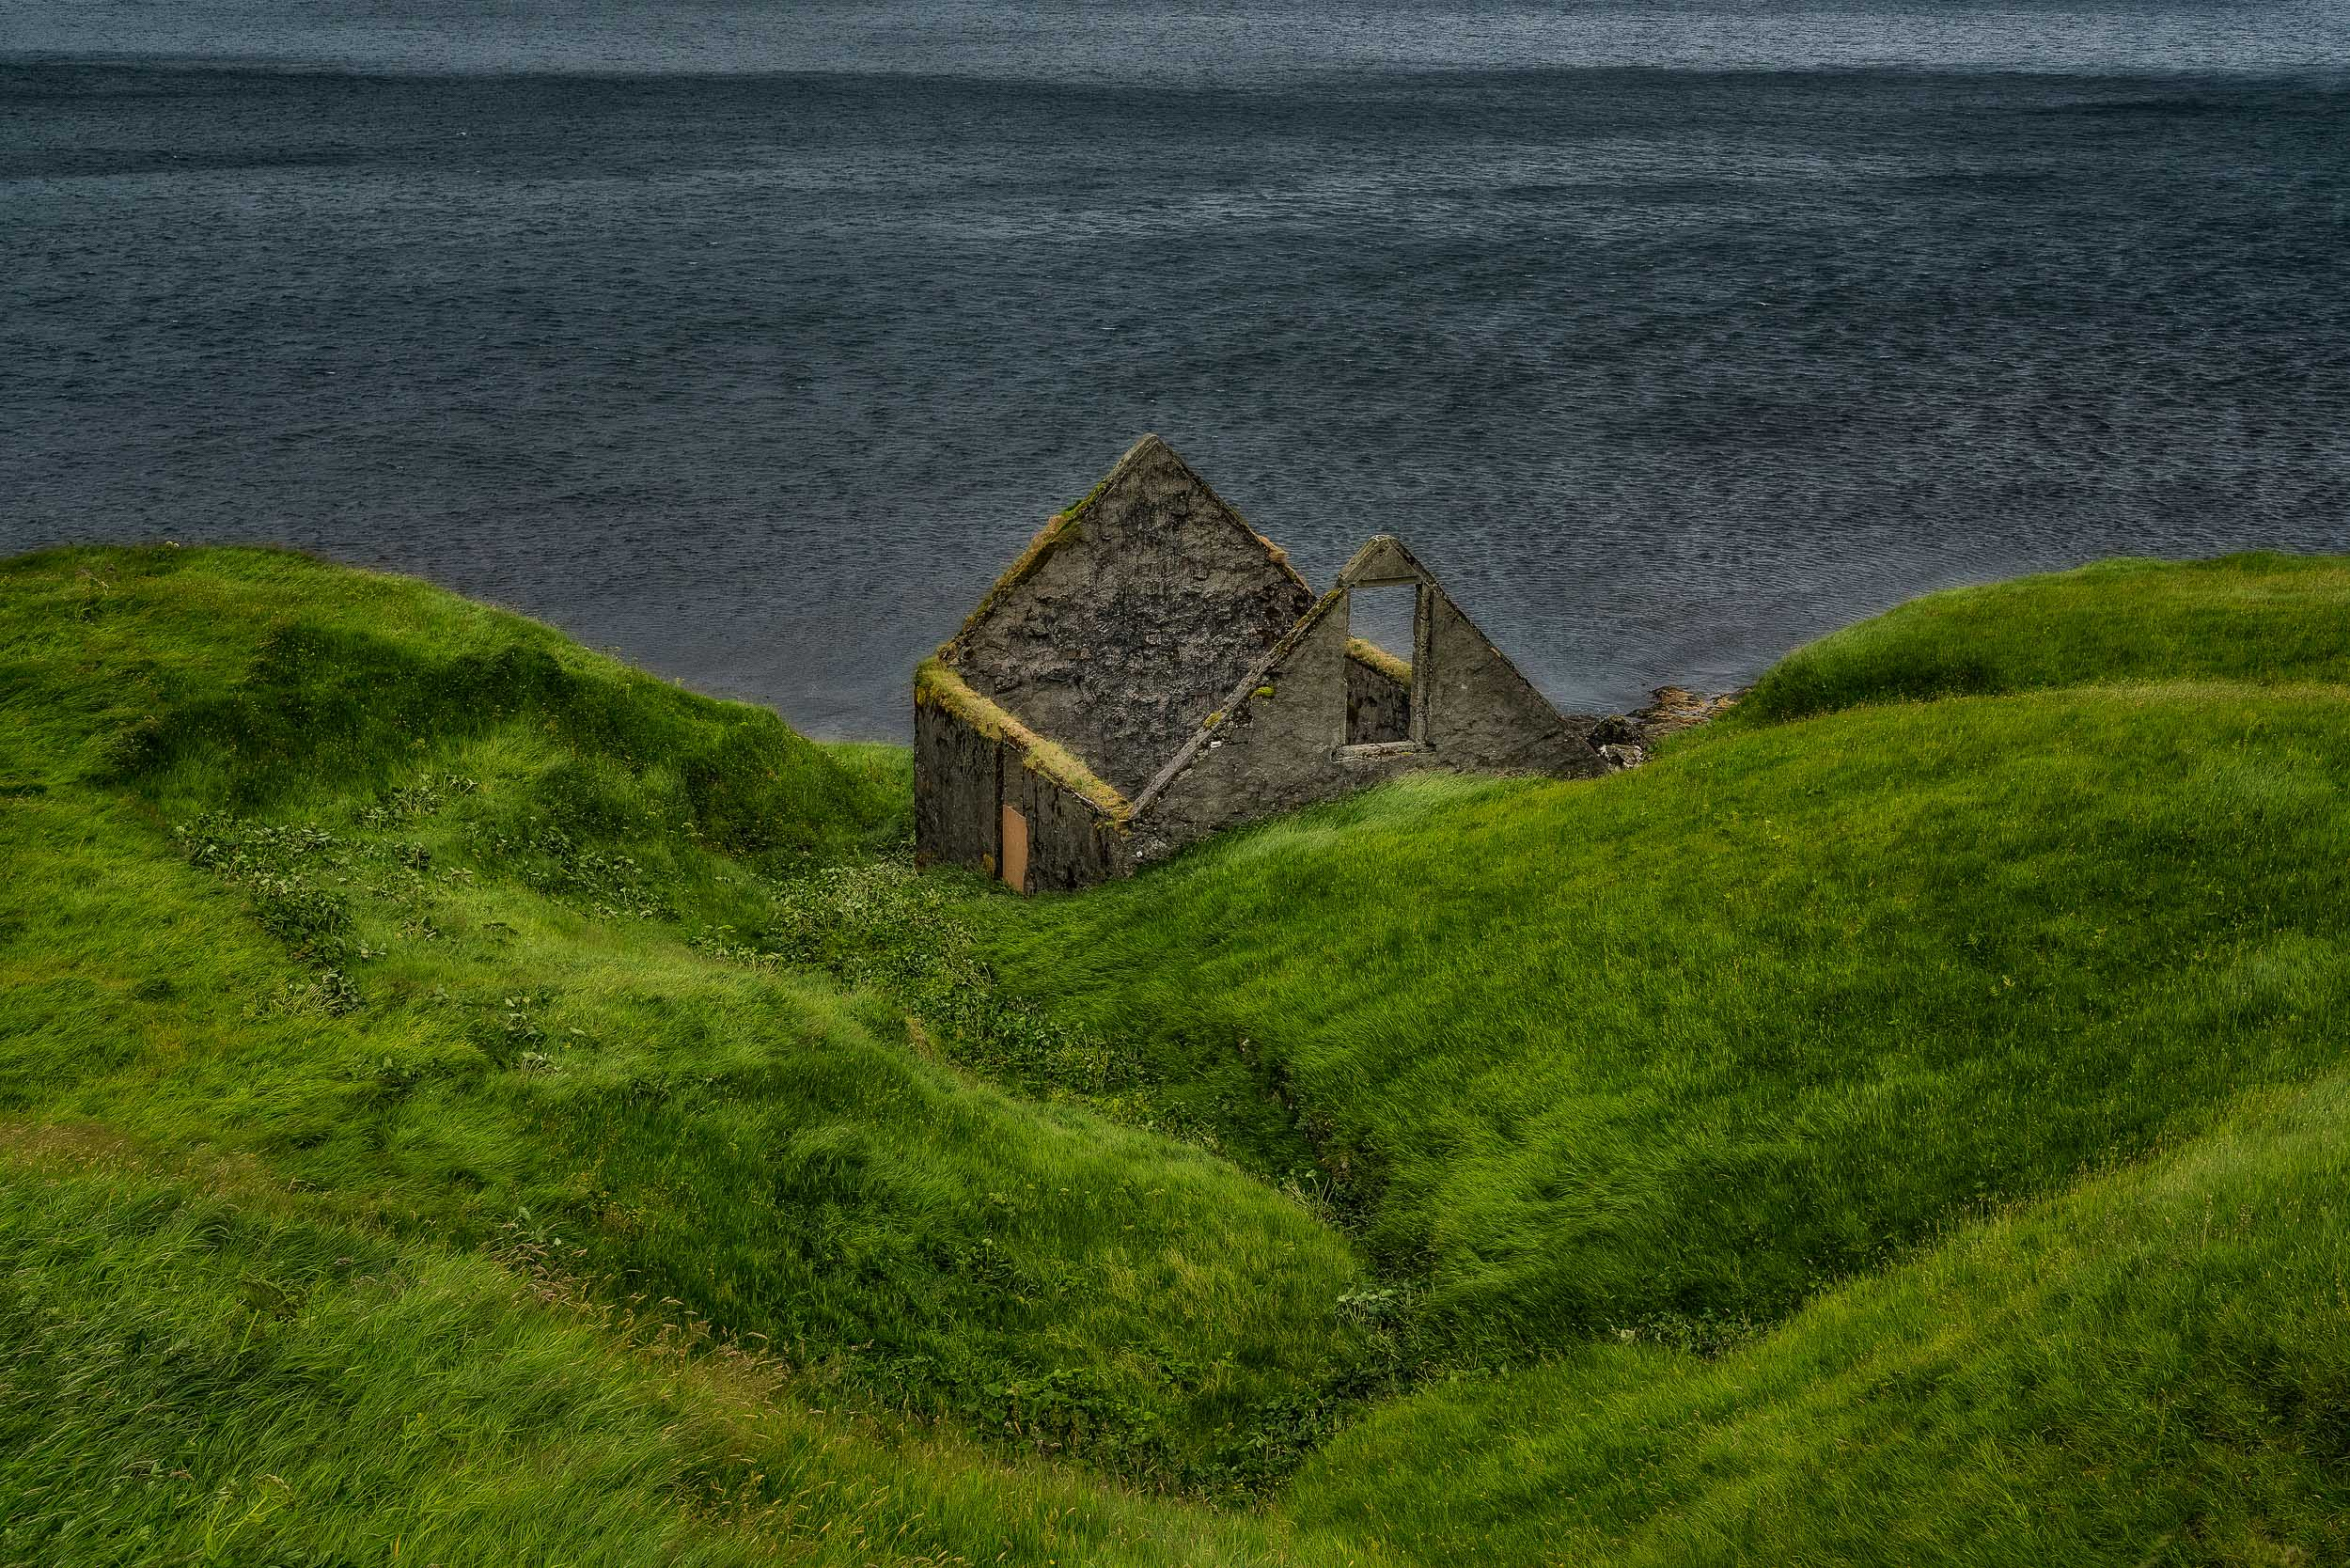 The    ruins of a house    by the shores of the sea on the island of    Eysturoy    in the    Faroe Islands   .